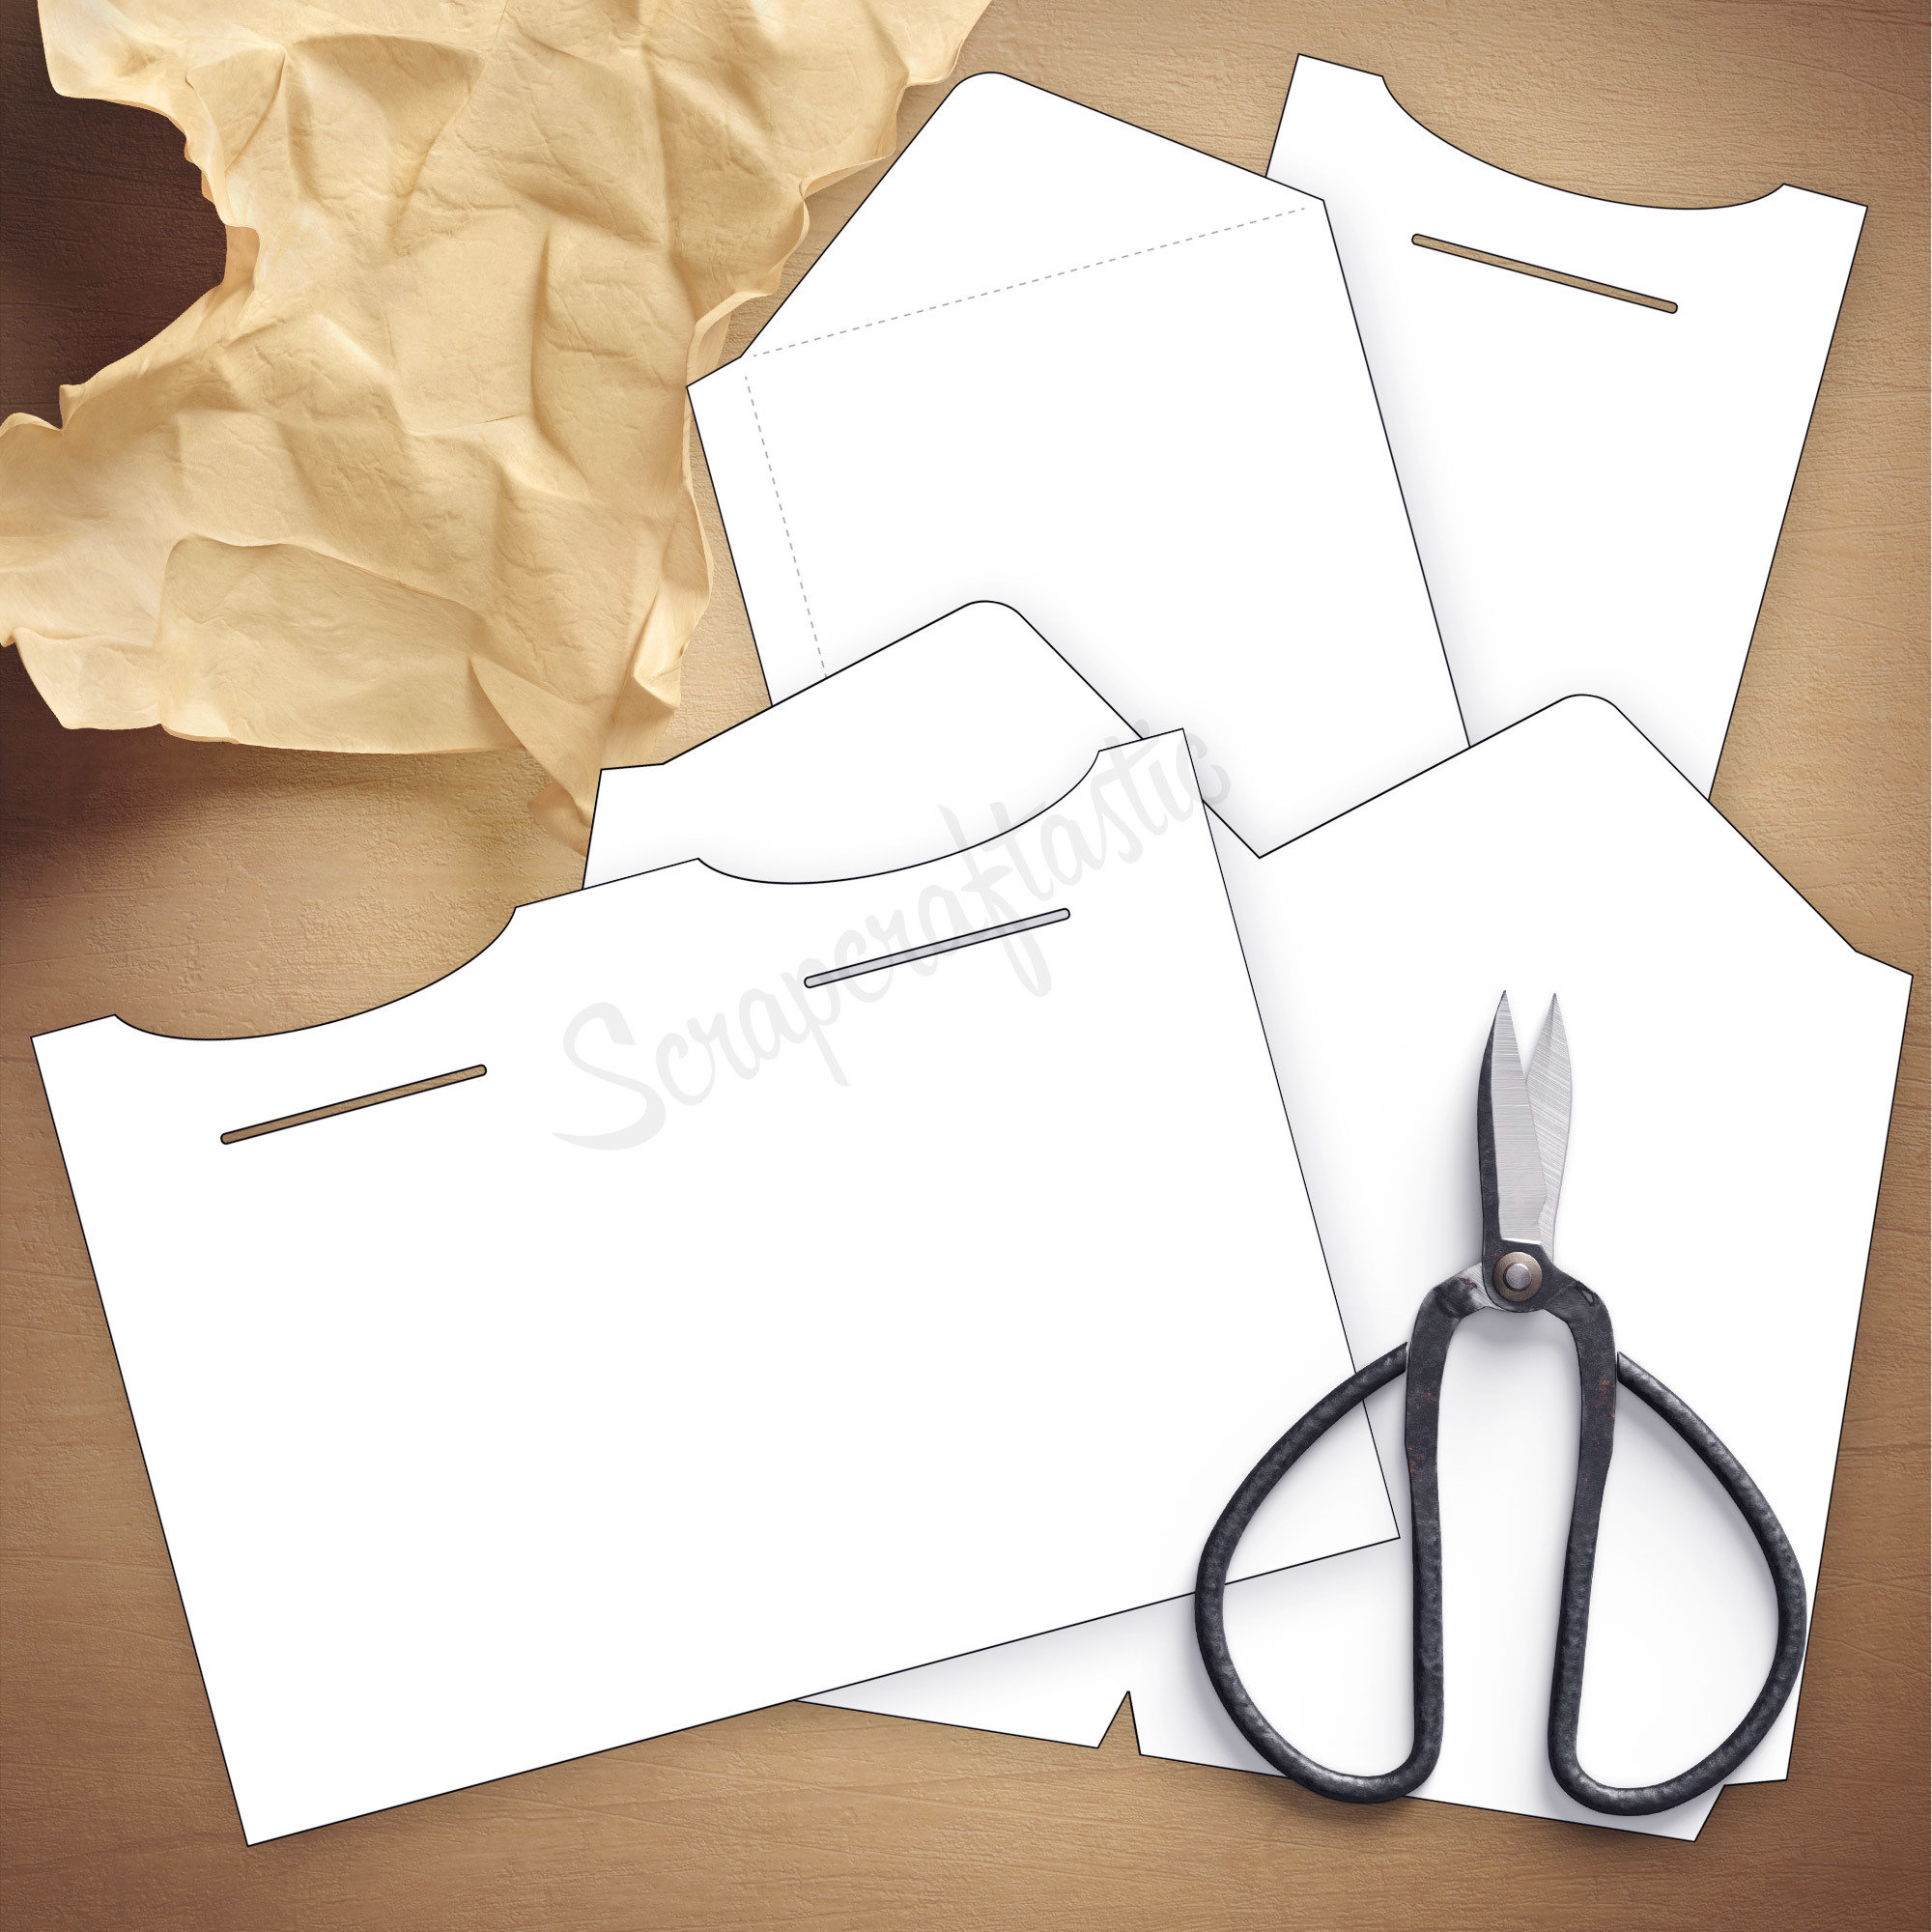 Double Envelope B6 Size Traveler's Notebook Insert Template & Cut Files 07019